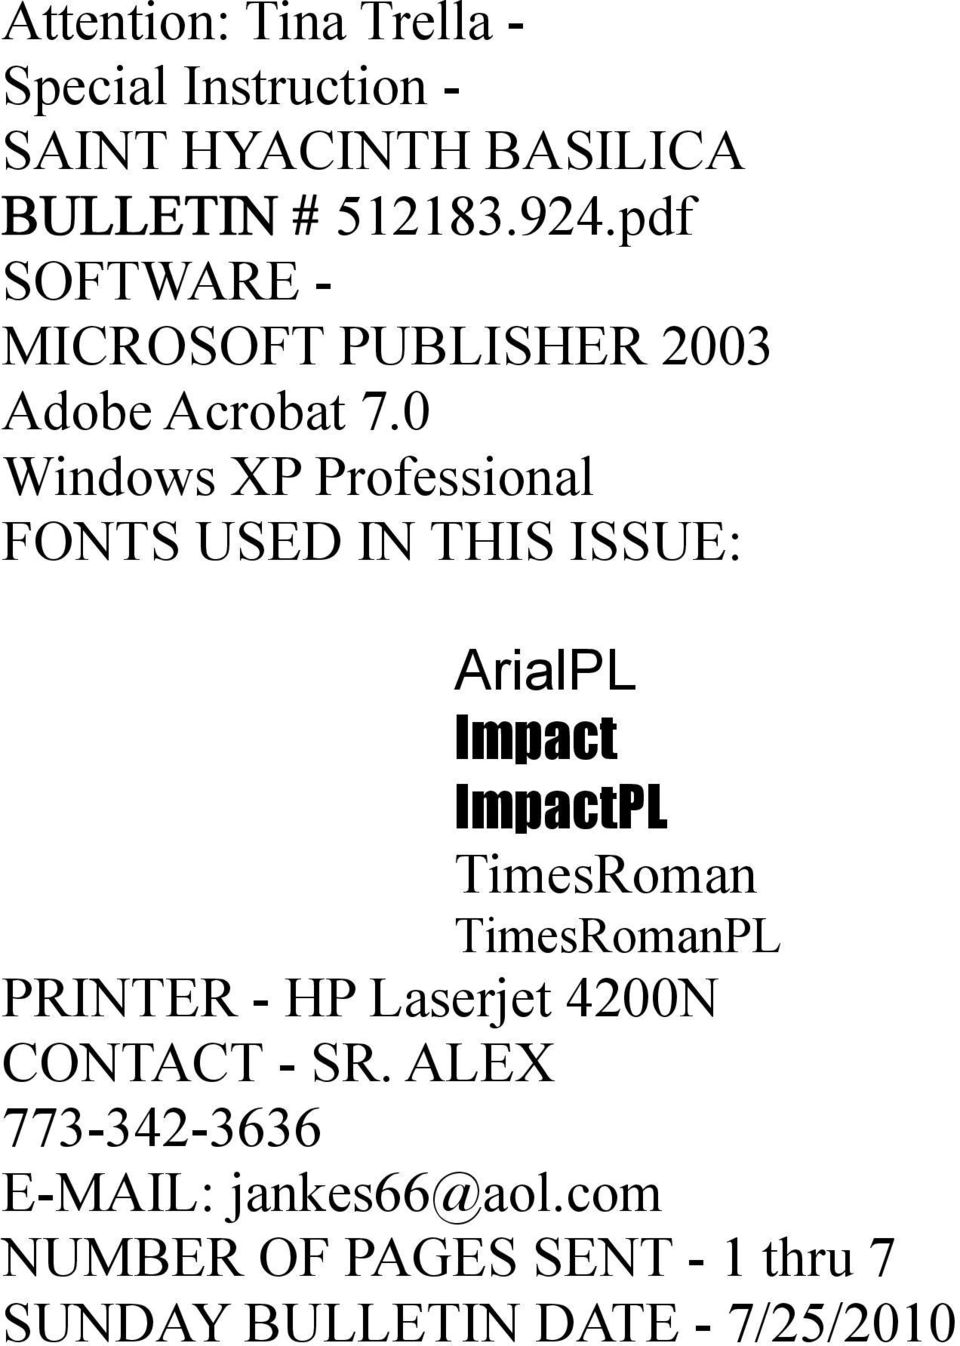 0 Windows XP Professional FONTS USED IN THIS ISSUE: ArialPL Impact ImpactPL TimesRoman TimesRomanPL